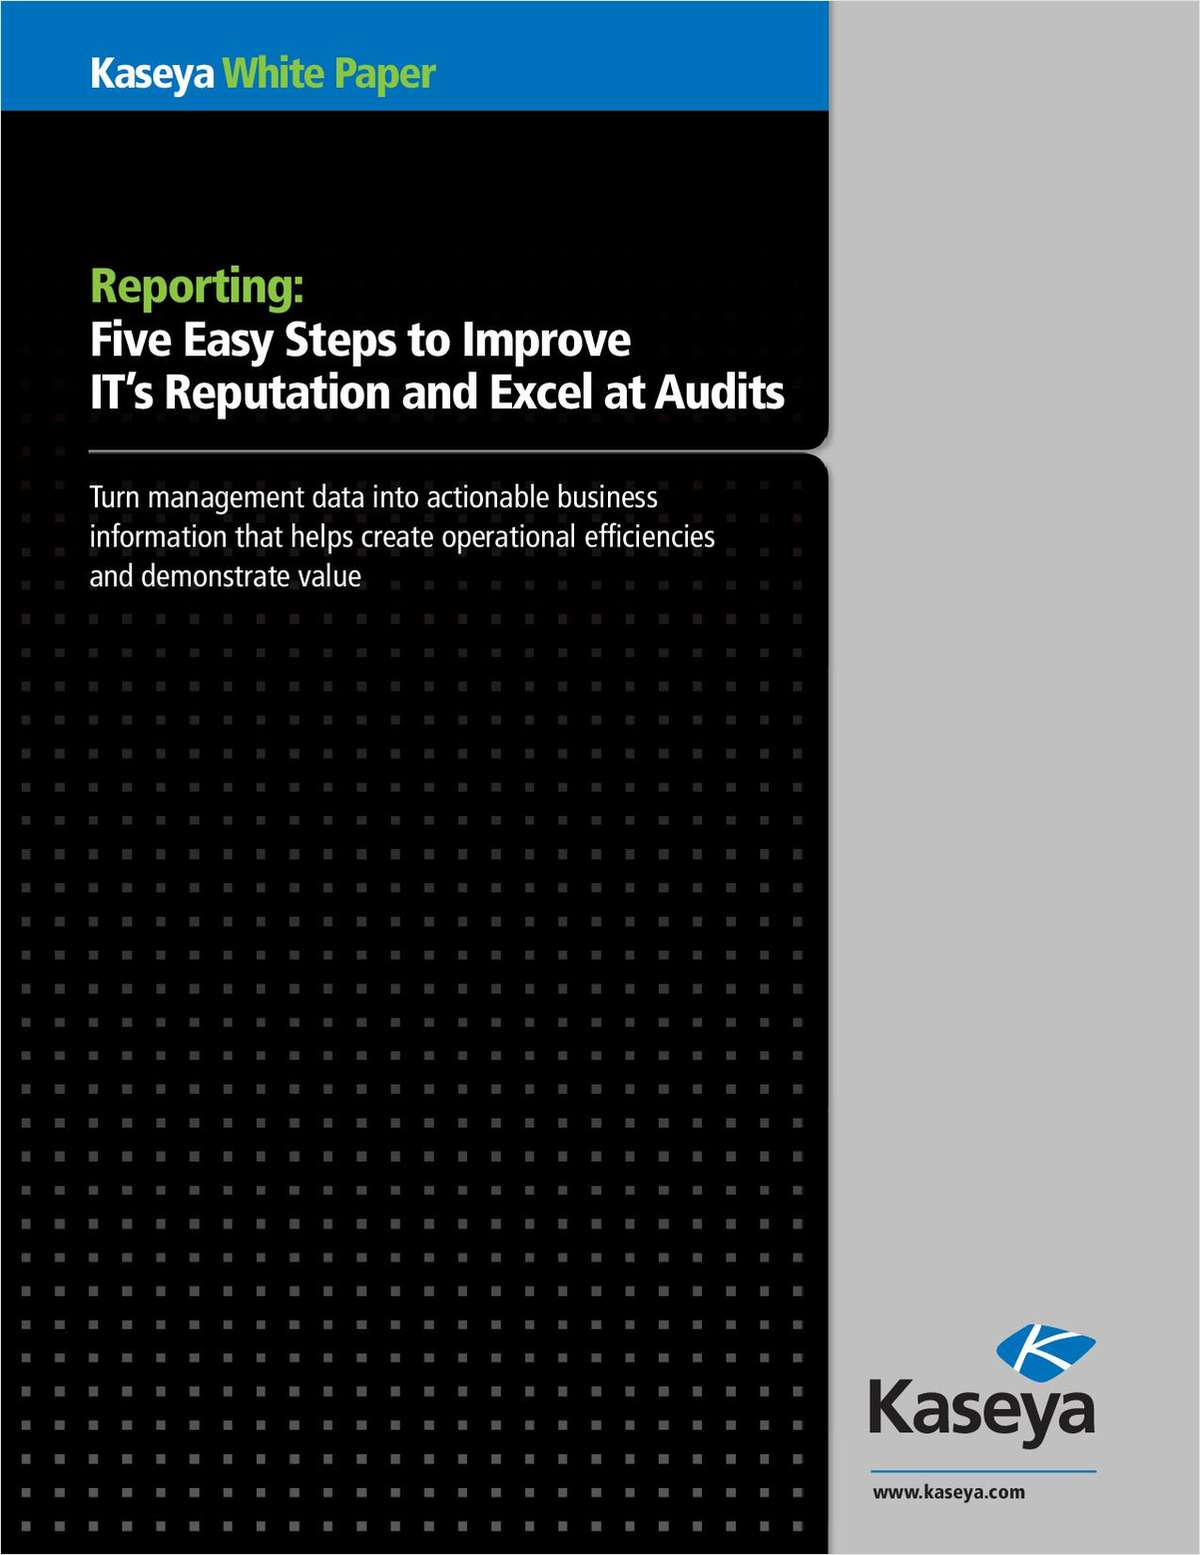 Five Easy Steps to Improve IT's Reputation and Excel at Audits